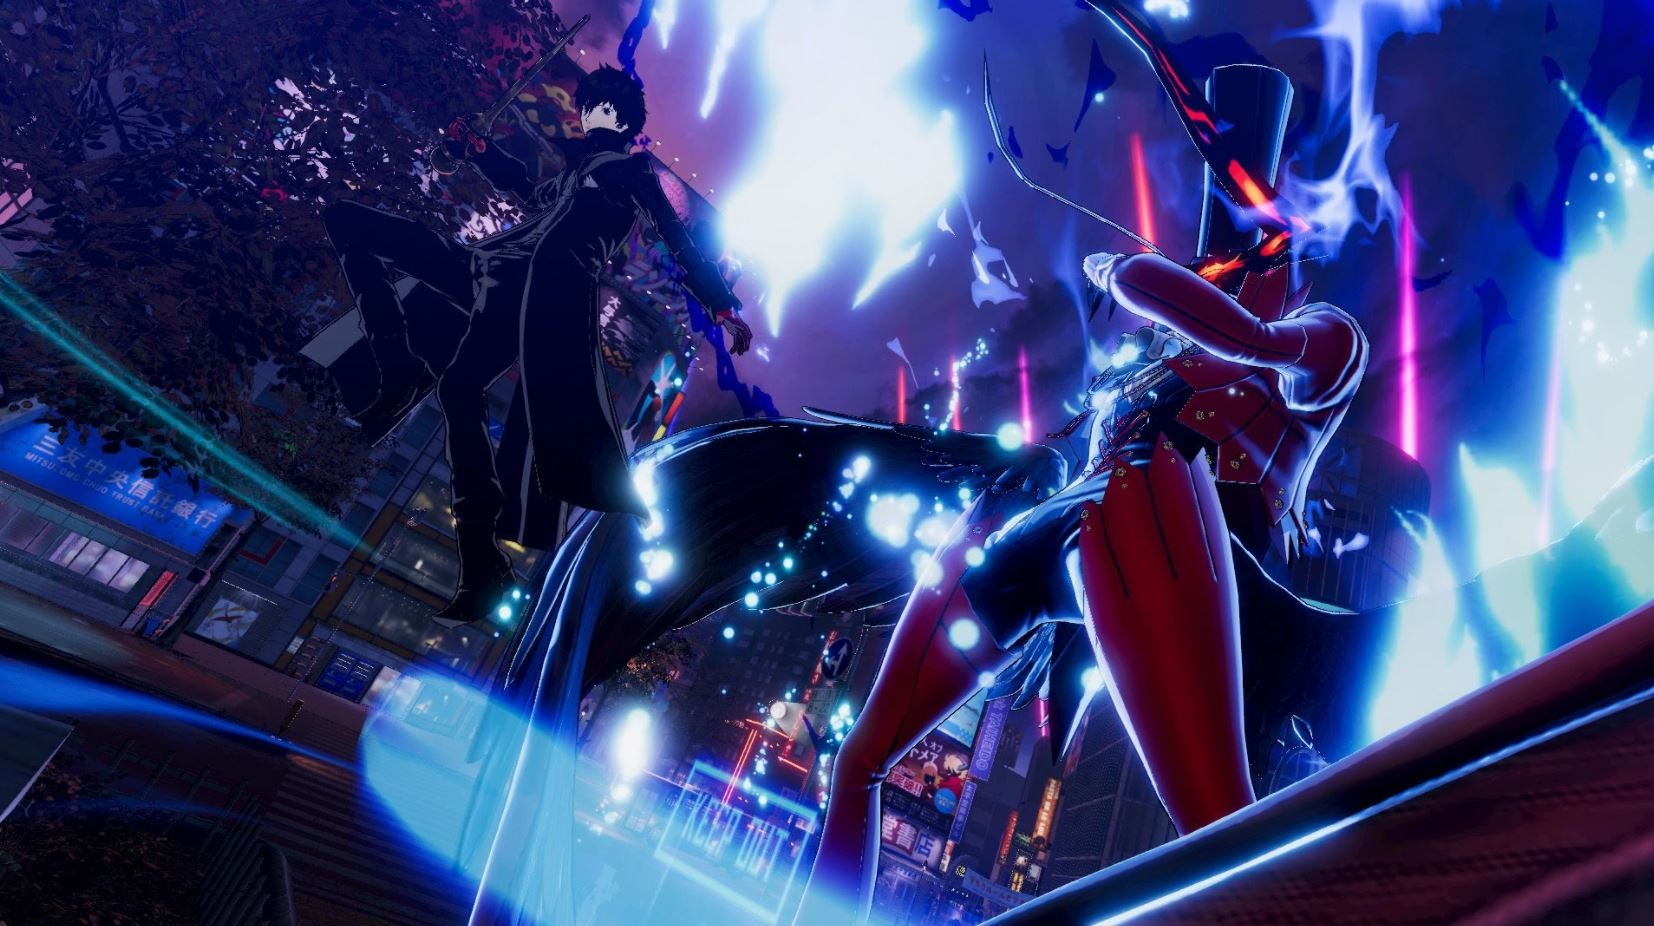 persona-5-strikers-hands-on-preview-ps4-personas-style-and-gameplay-translated-excellently-to-a-new-genre-1